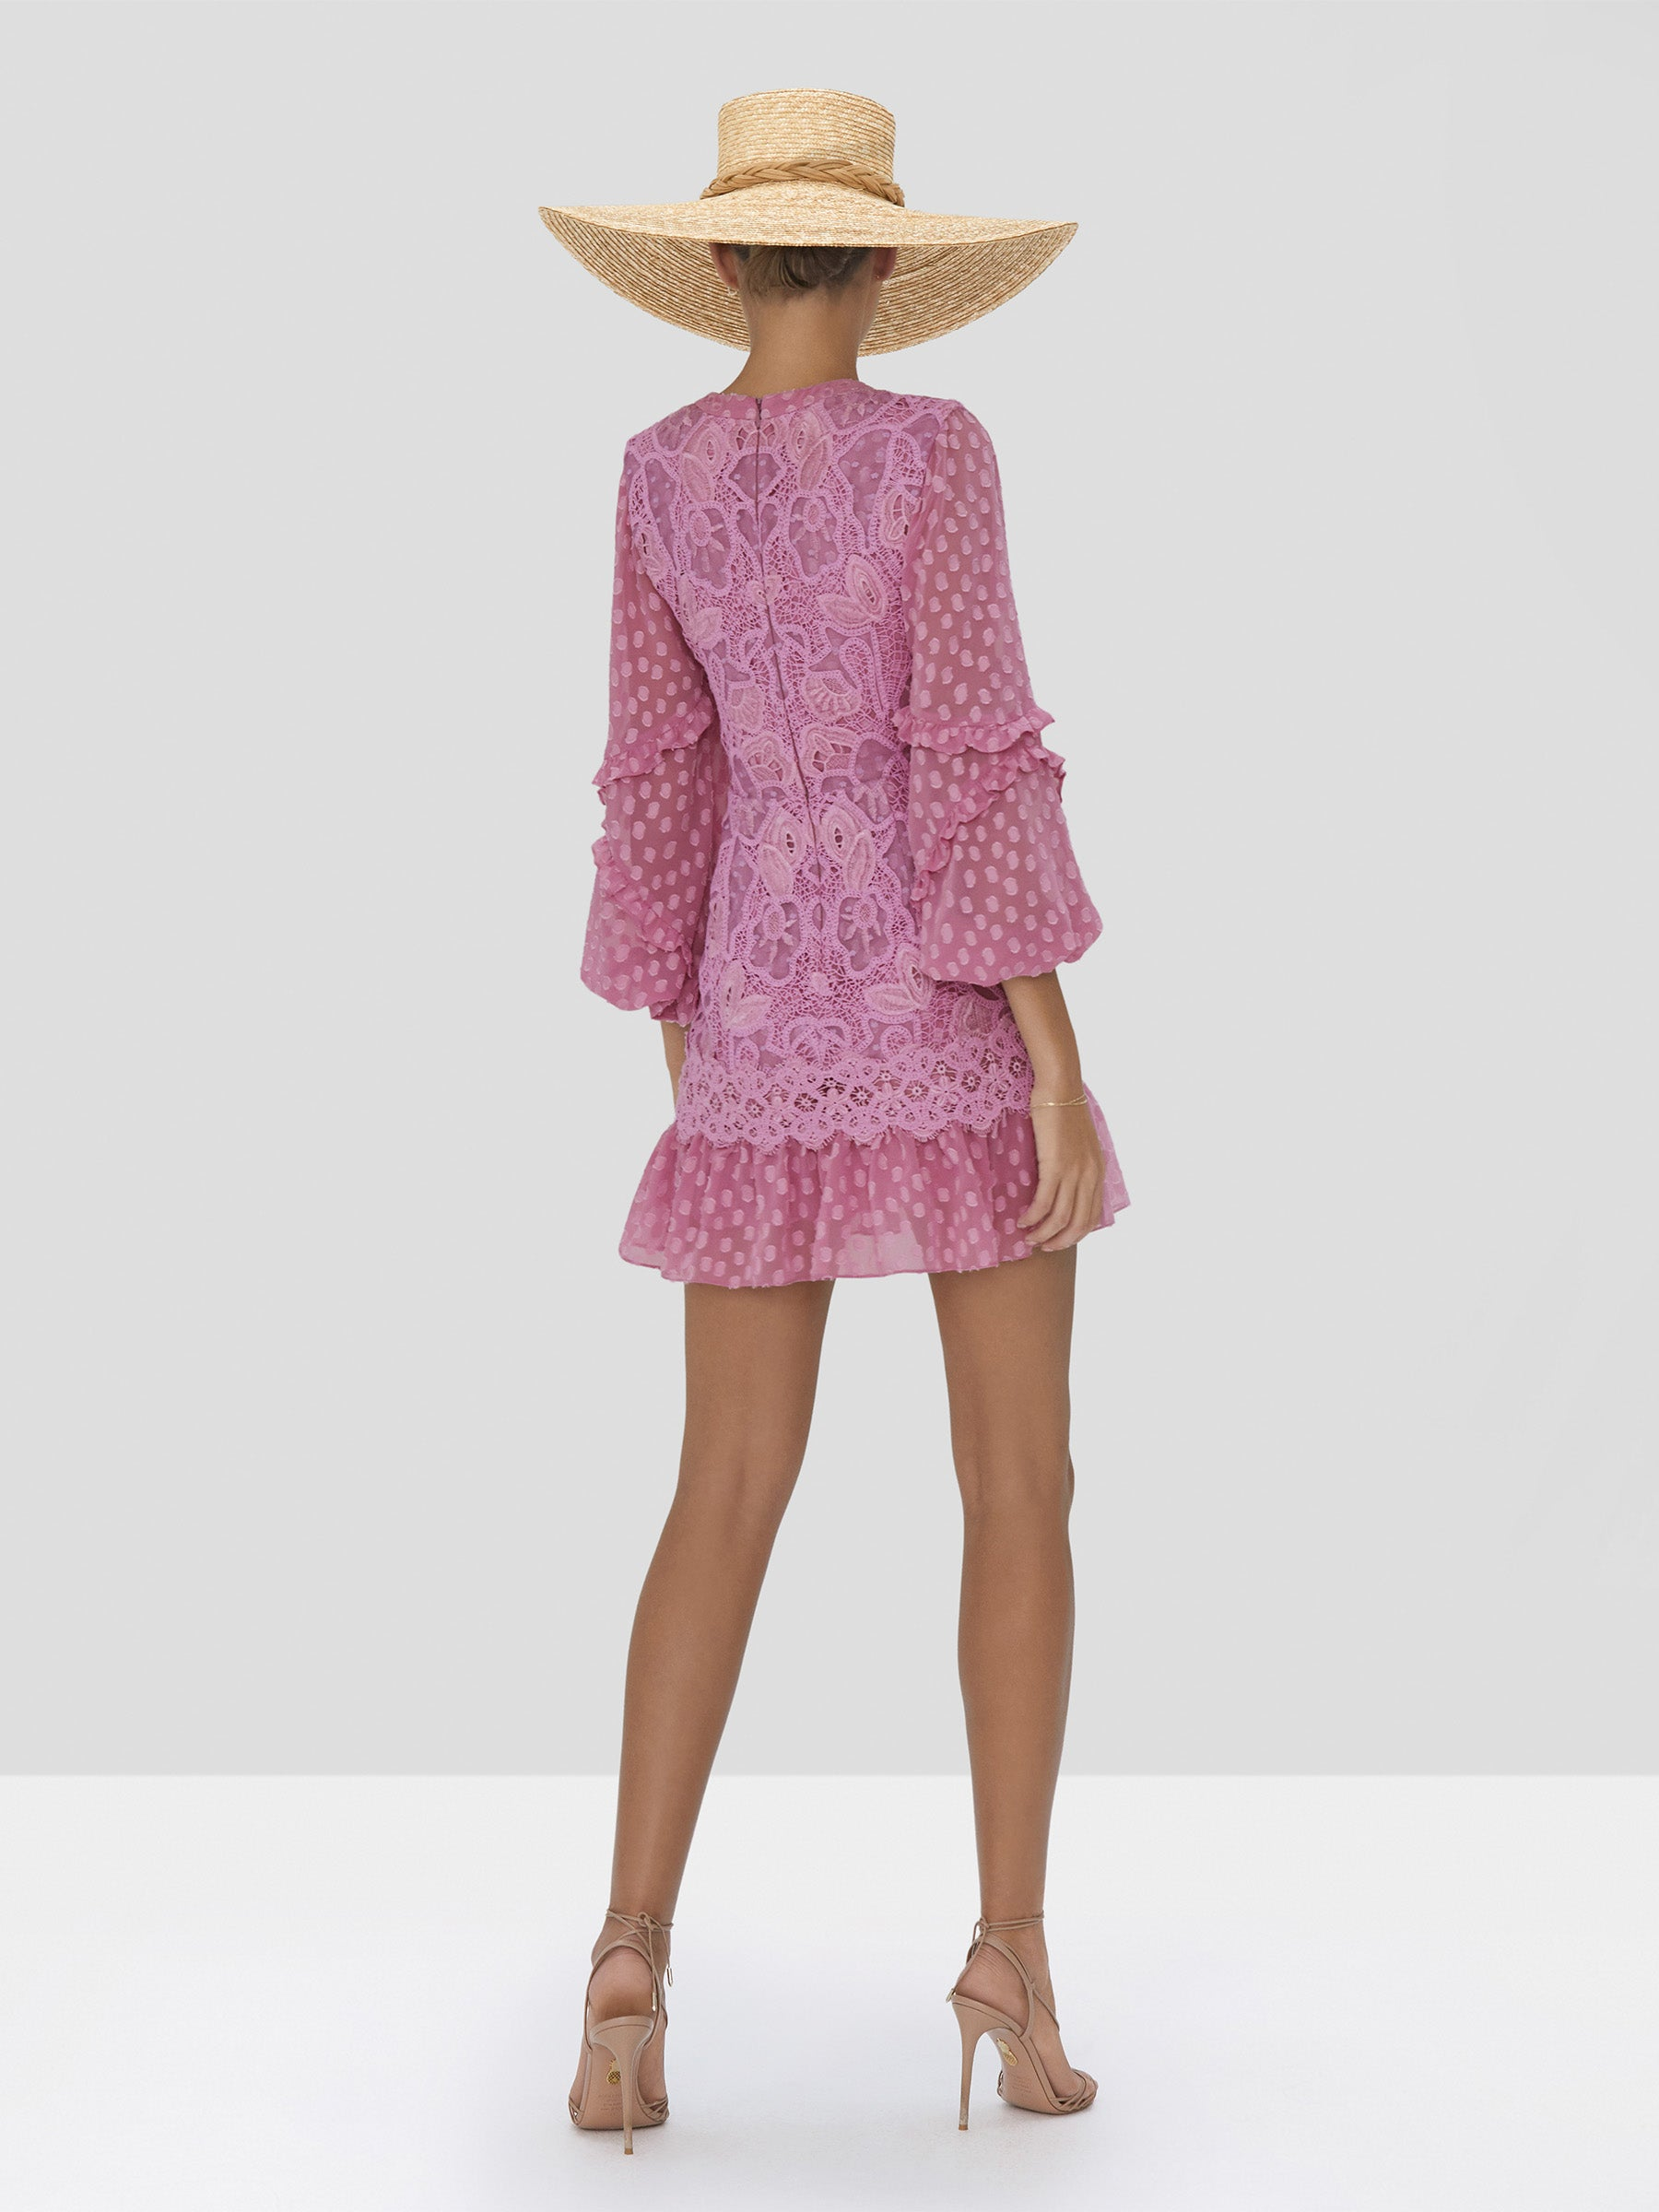 zendaya dress in lilac macrame  - Rear View